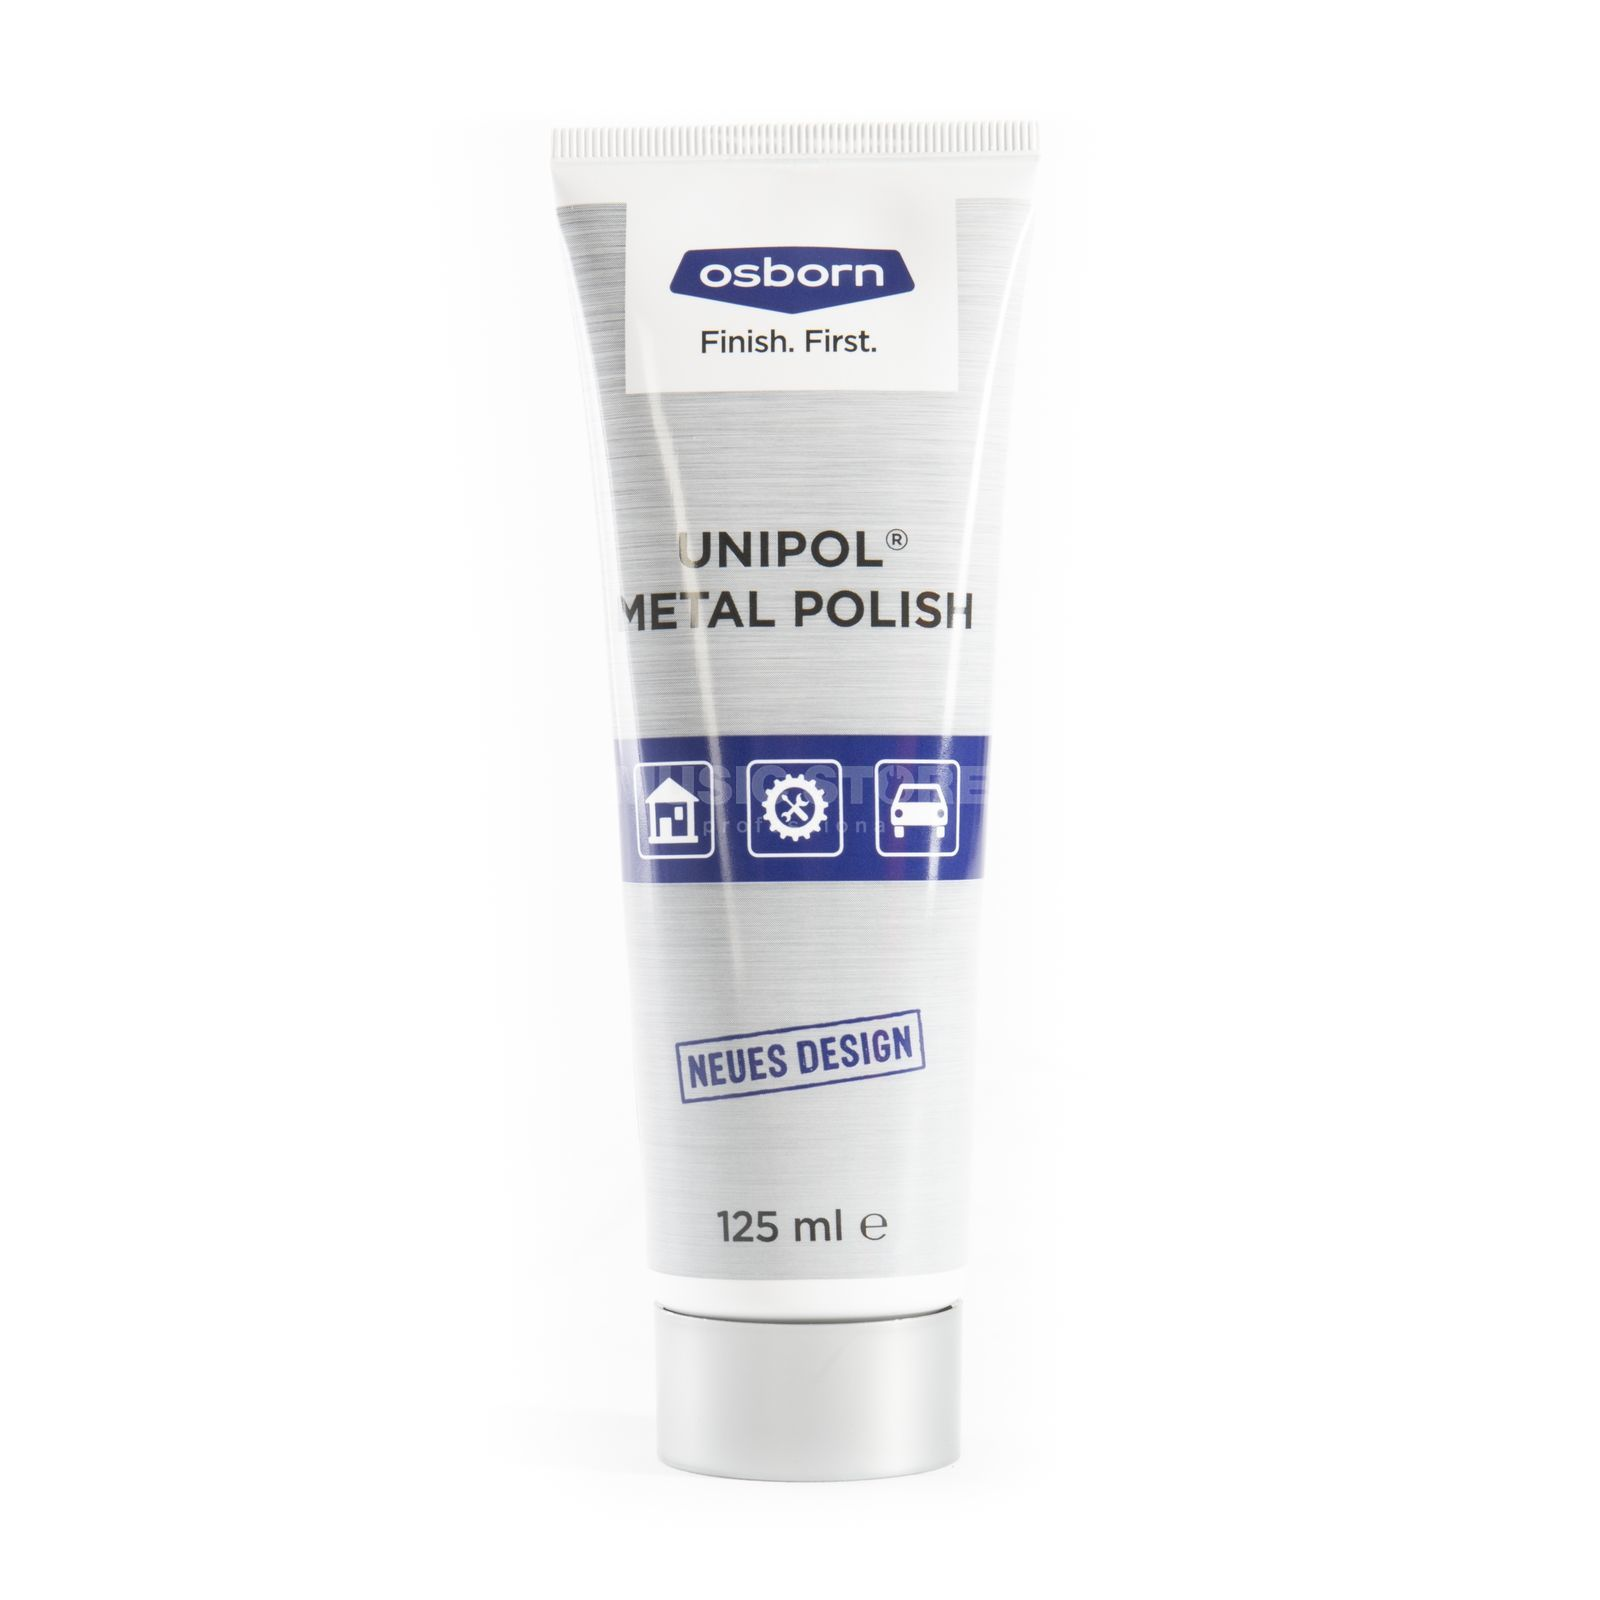 UNIPOL Metal Polish 50ml (100ml = 9.- Ç) Изображение товара